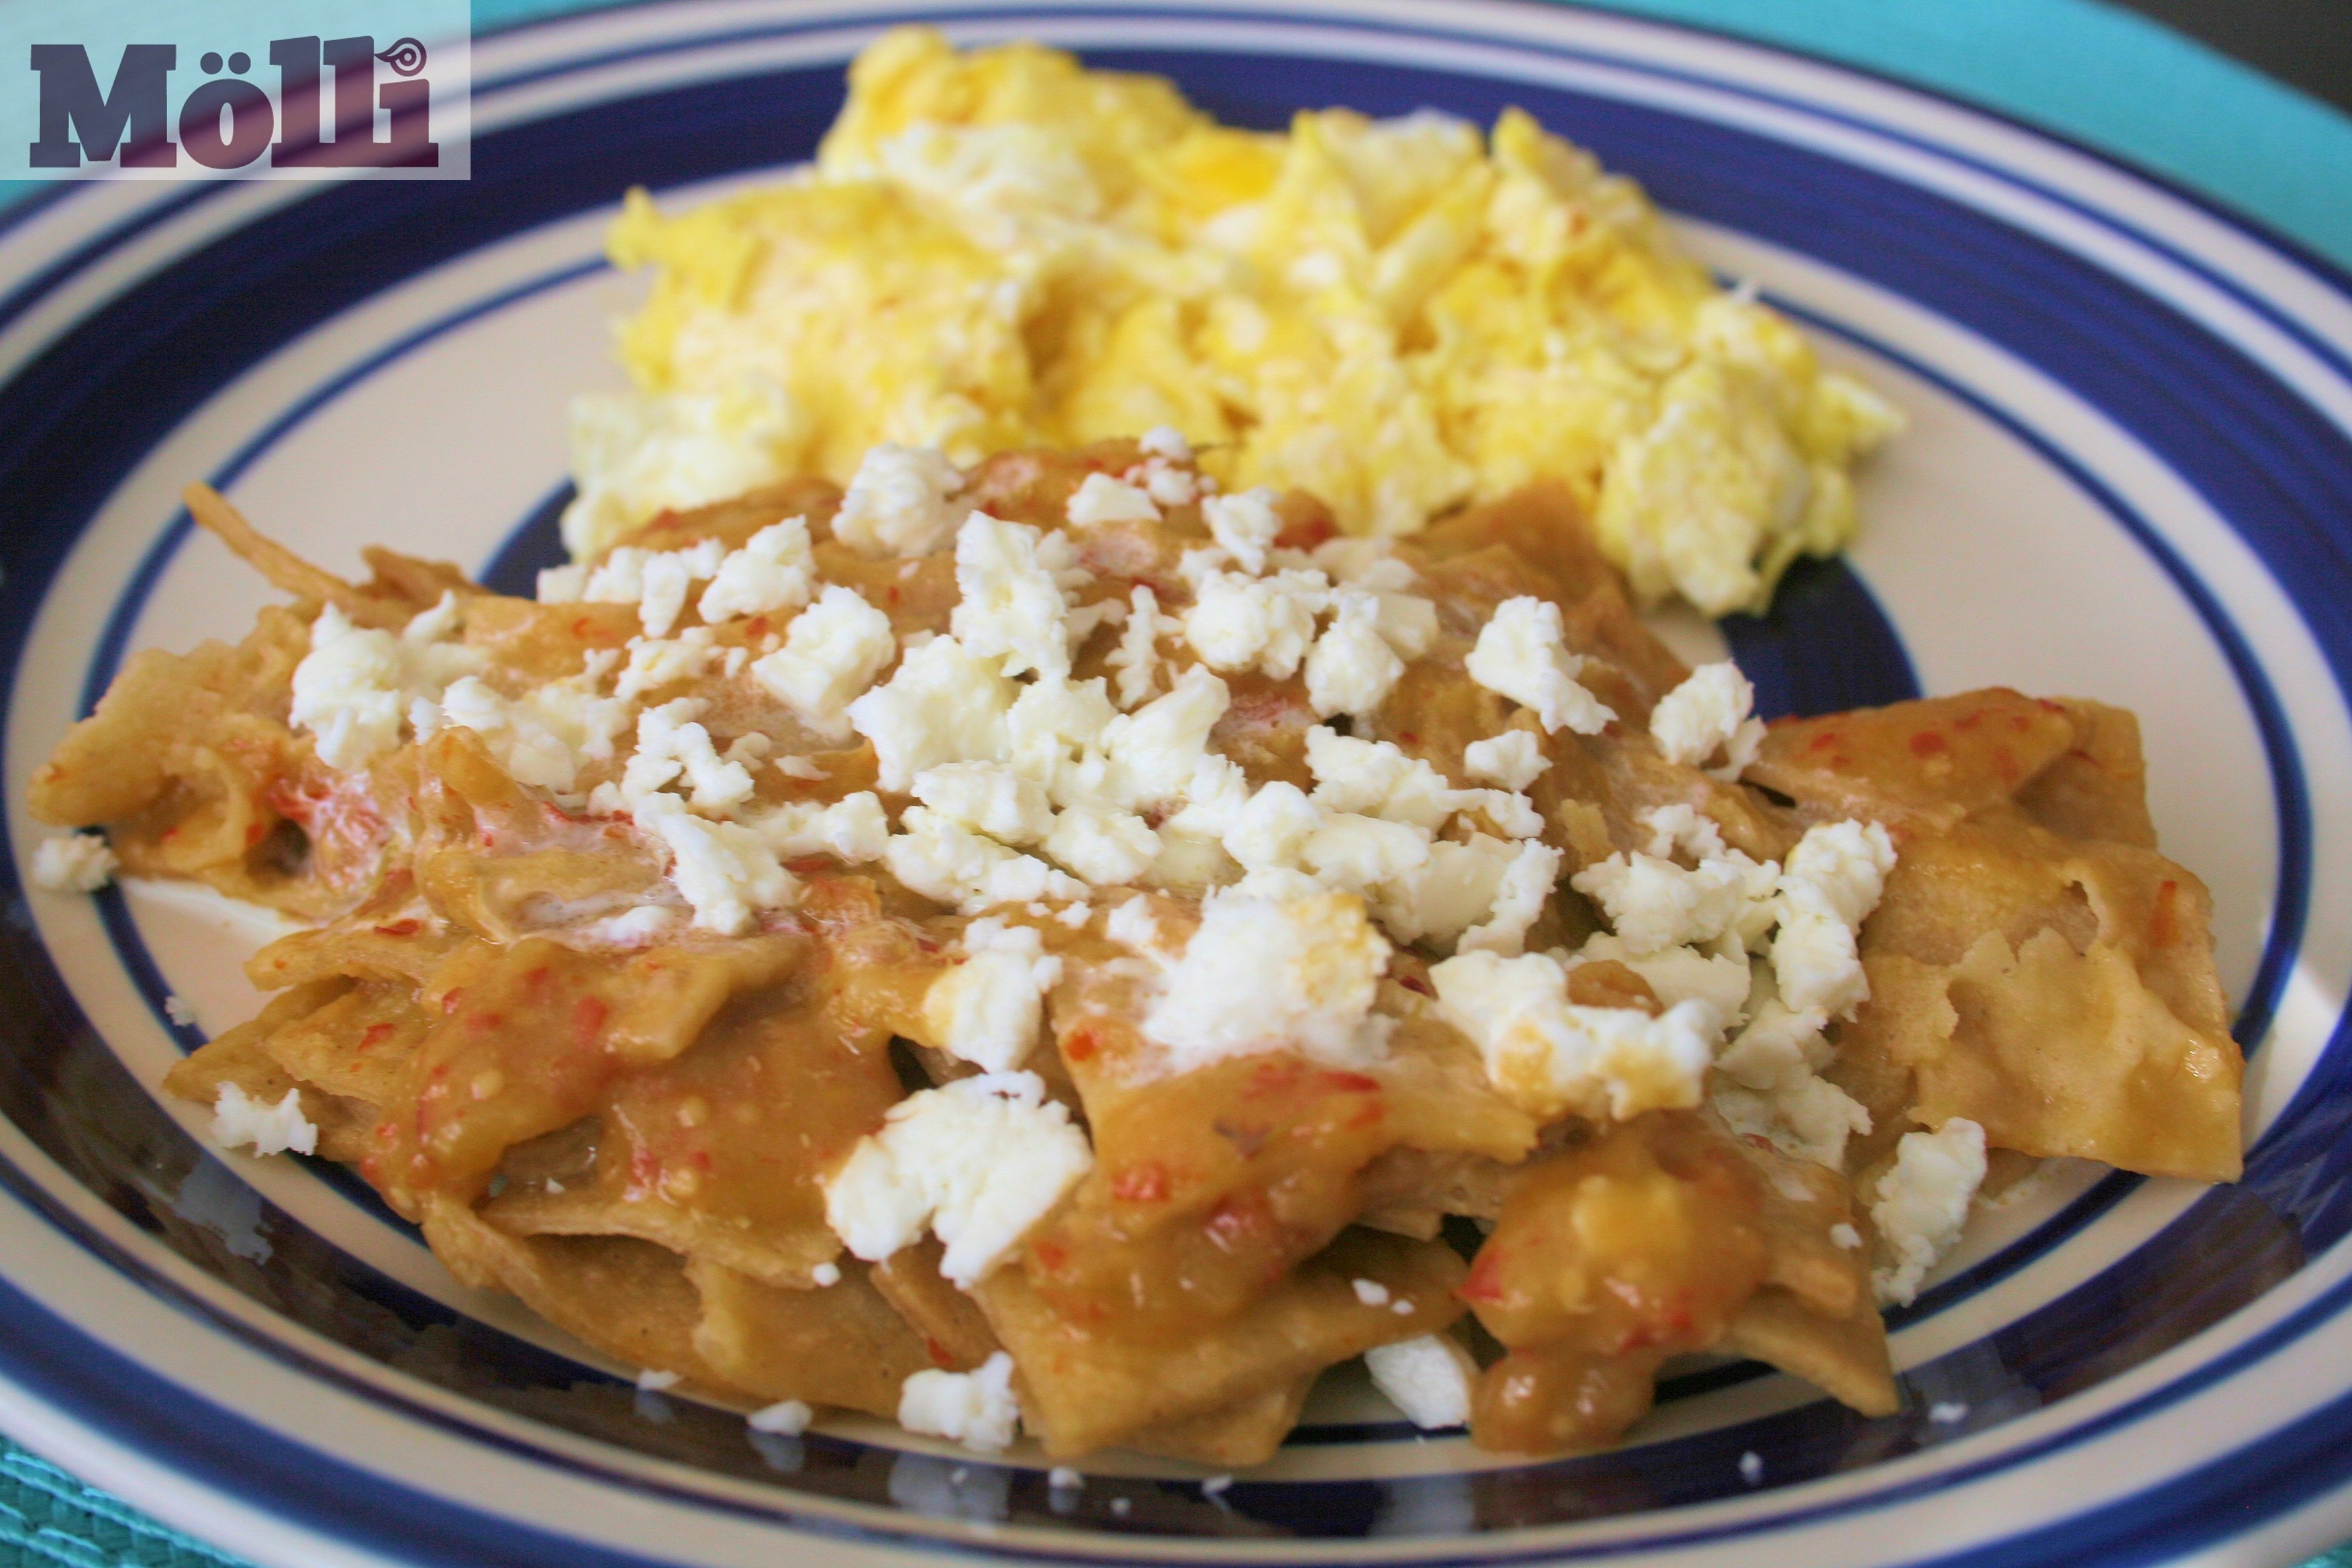 ... Other Breakfast-Brunch Green chilaquiles (Chilaquiles verdes